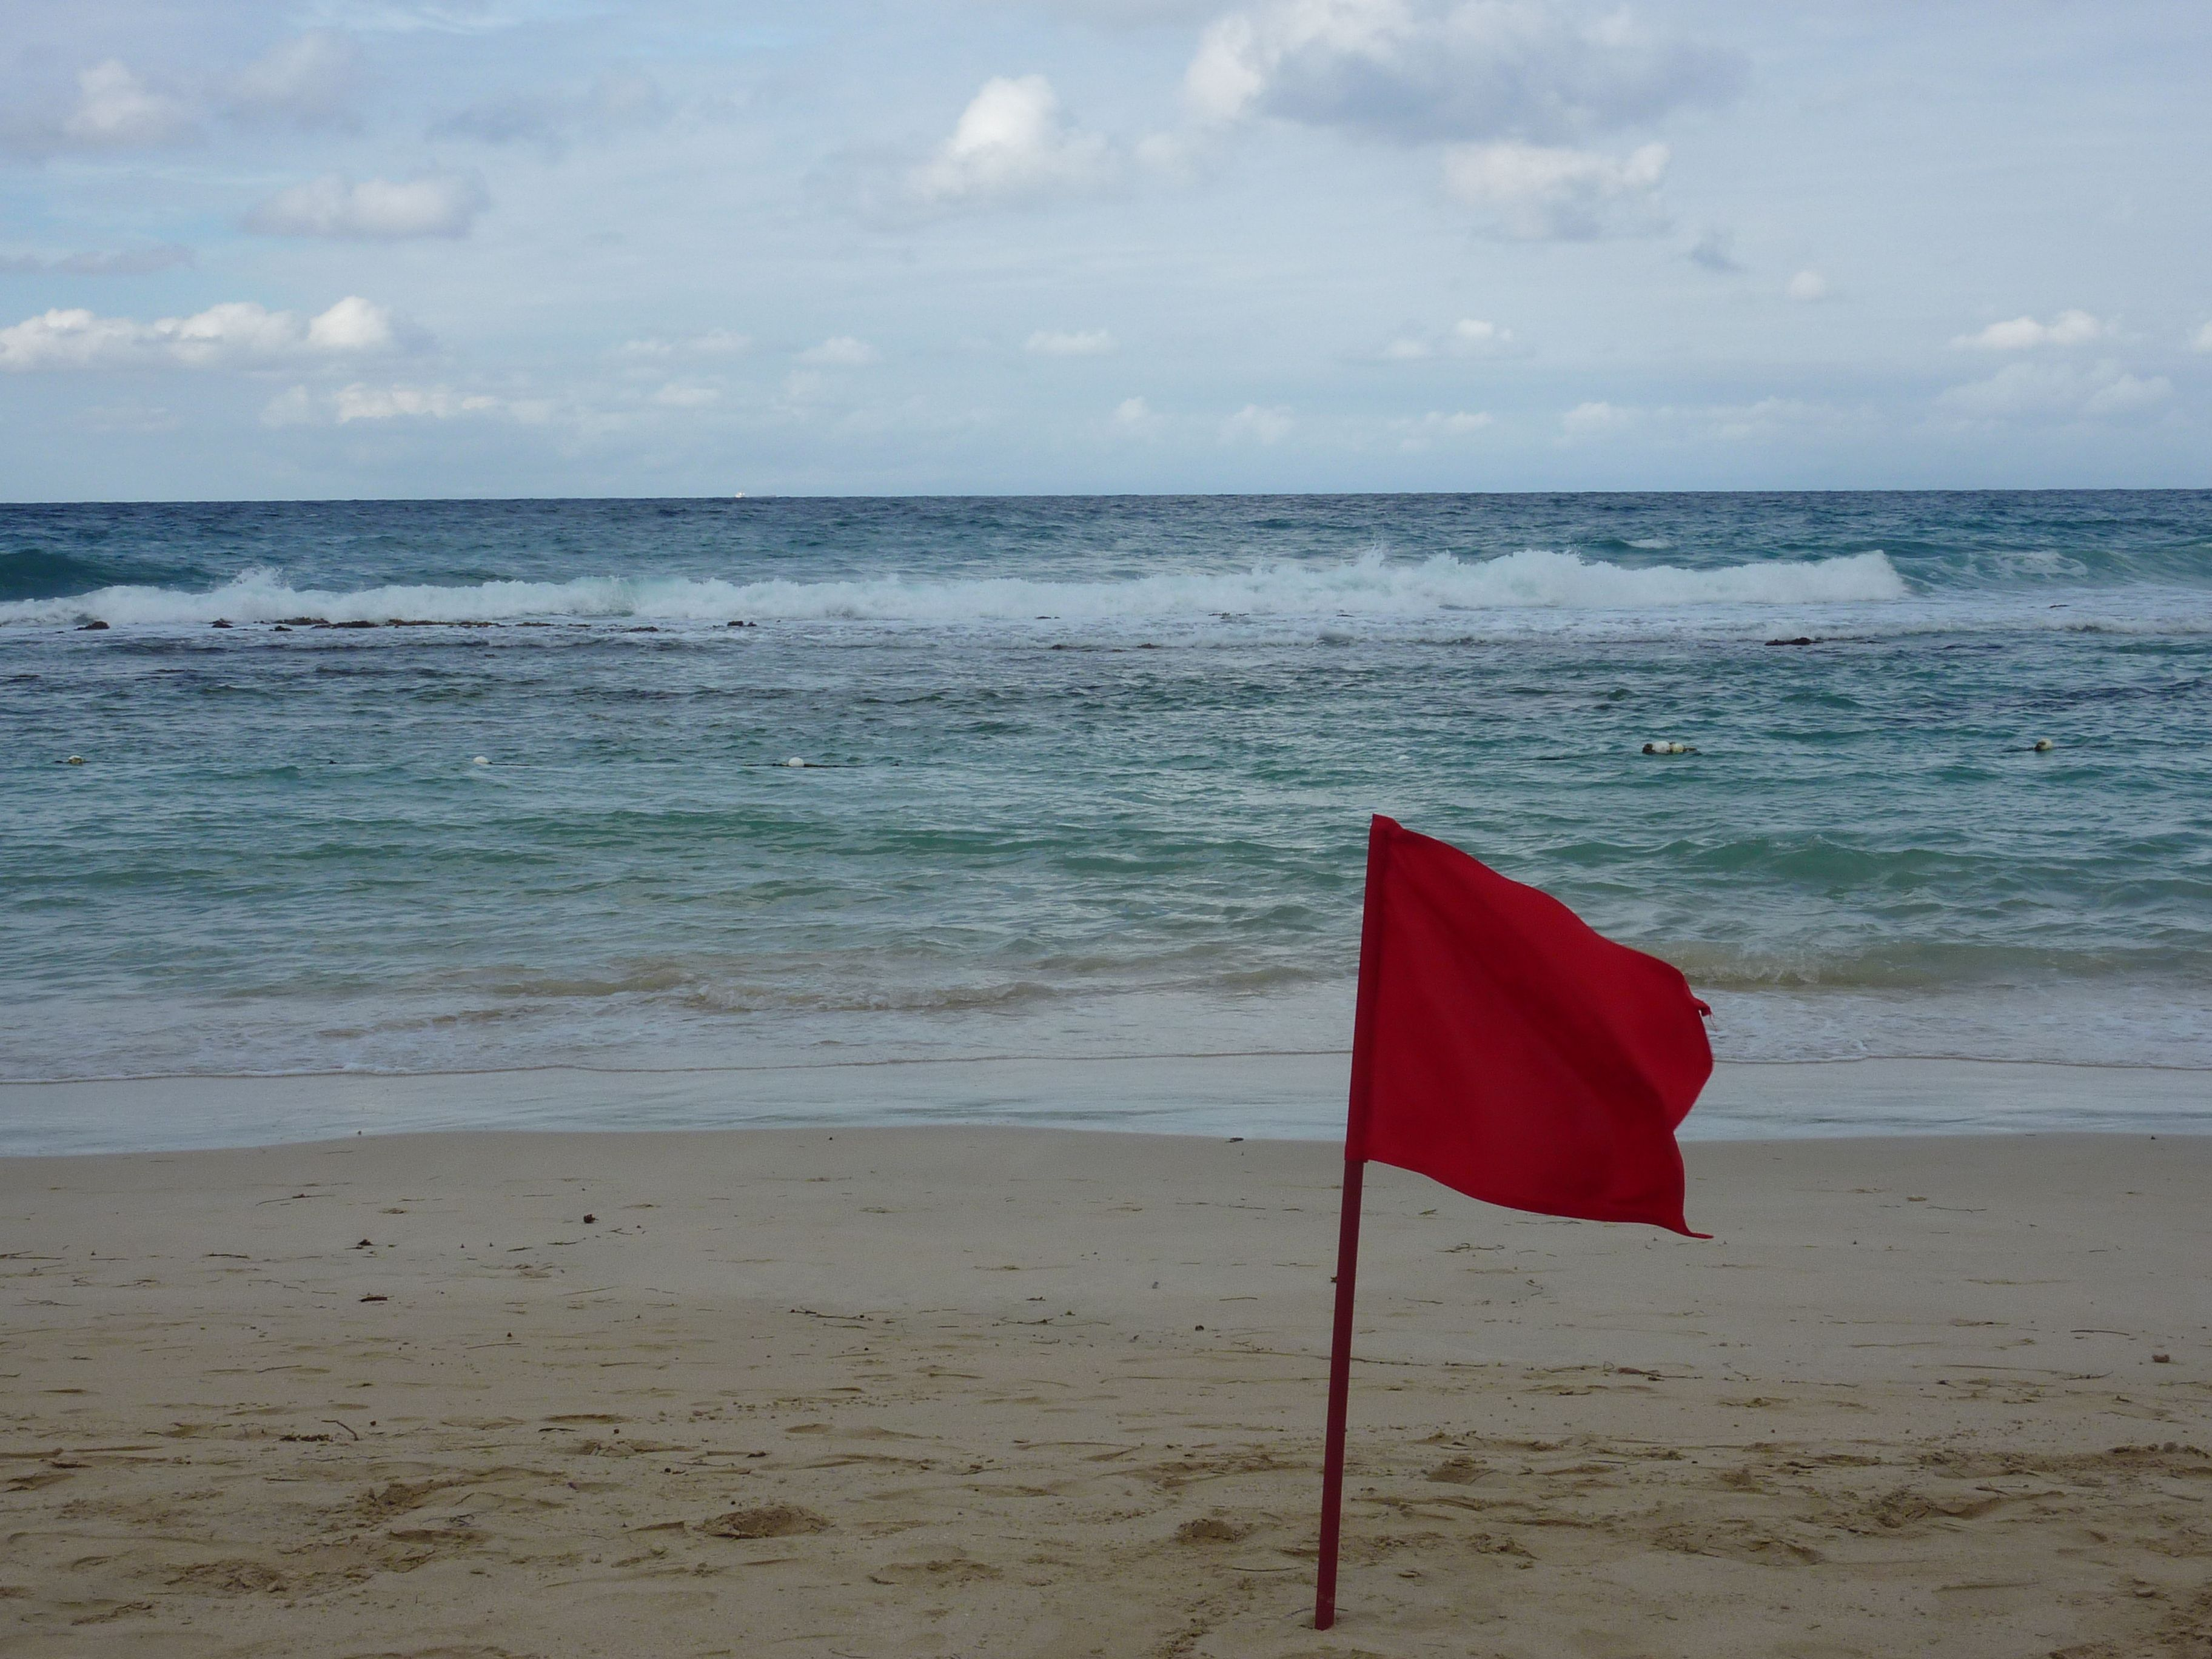 When The Red Flags Are Out That Means The Ocean Is Closed Time To Go Find Something Else To Do Did Someone Say Swim Up Pool Pool Bar Favorite Places Jamaica